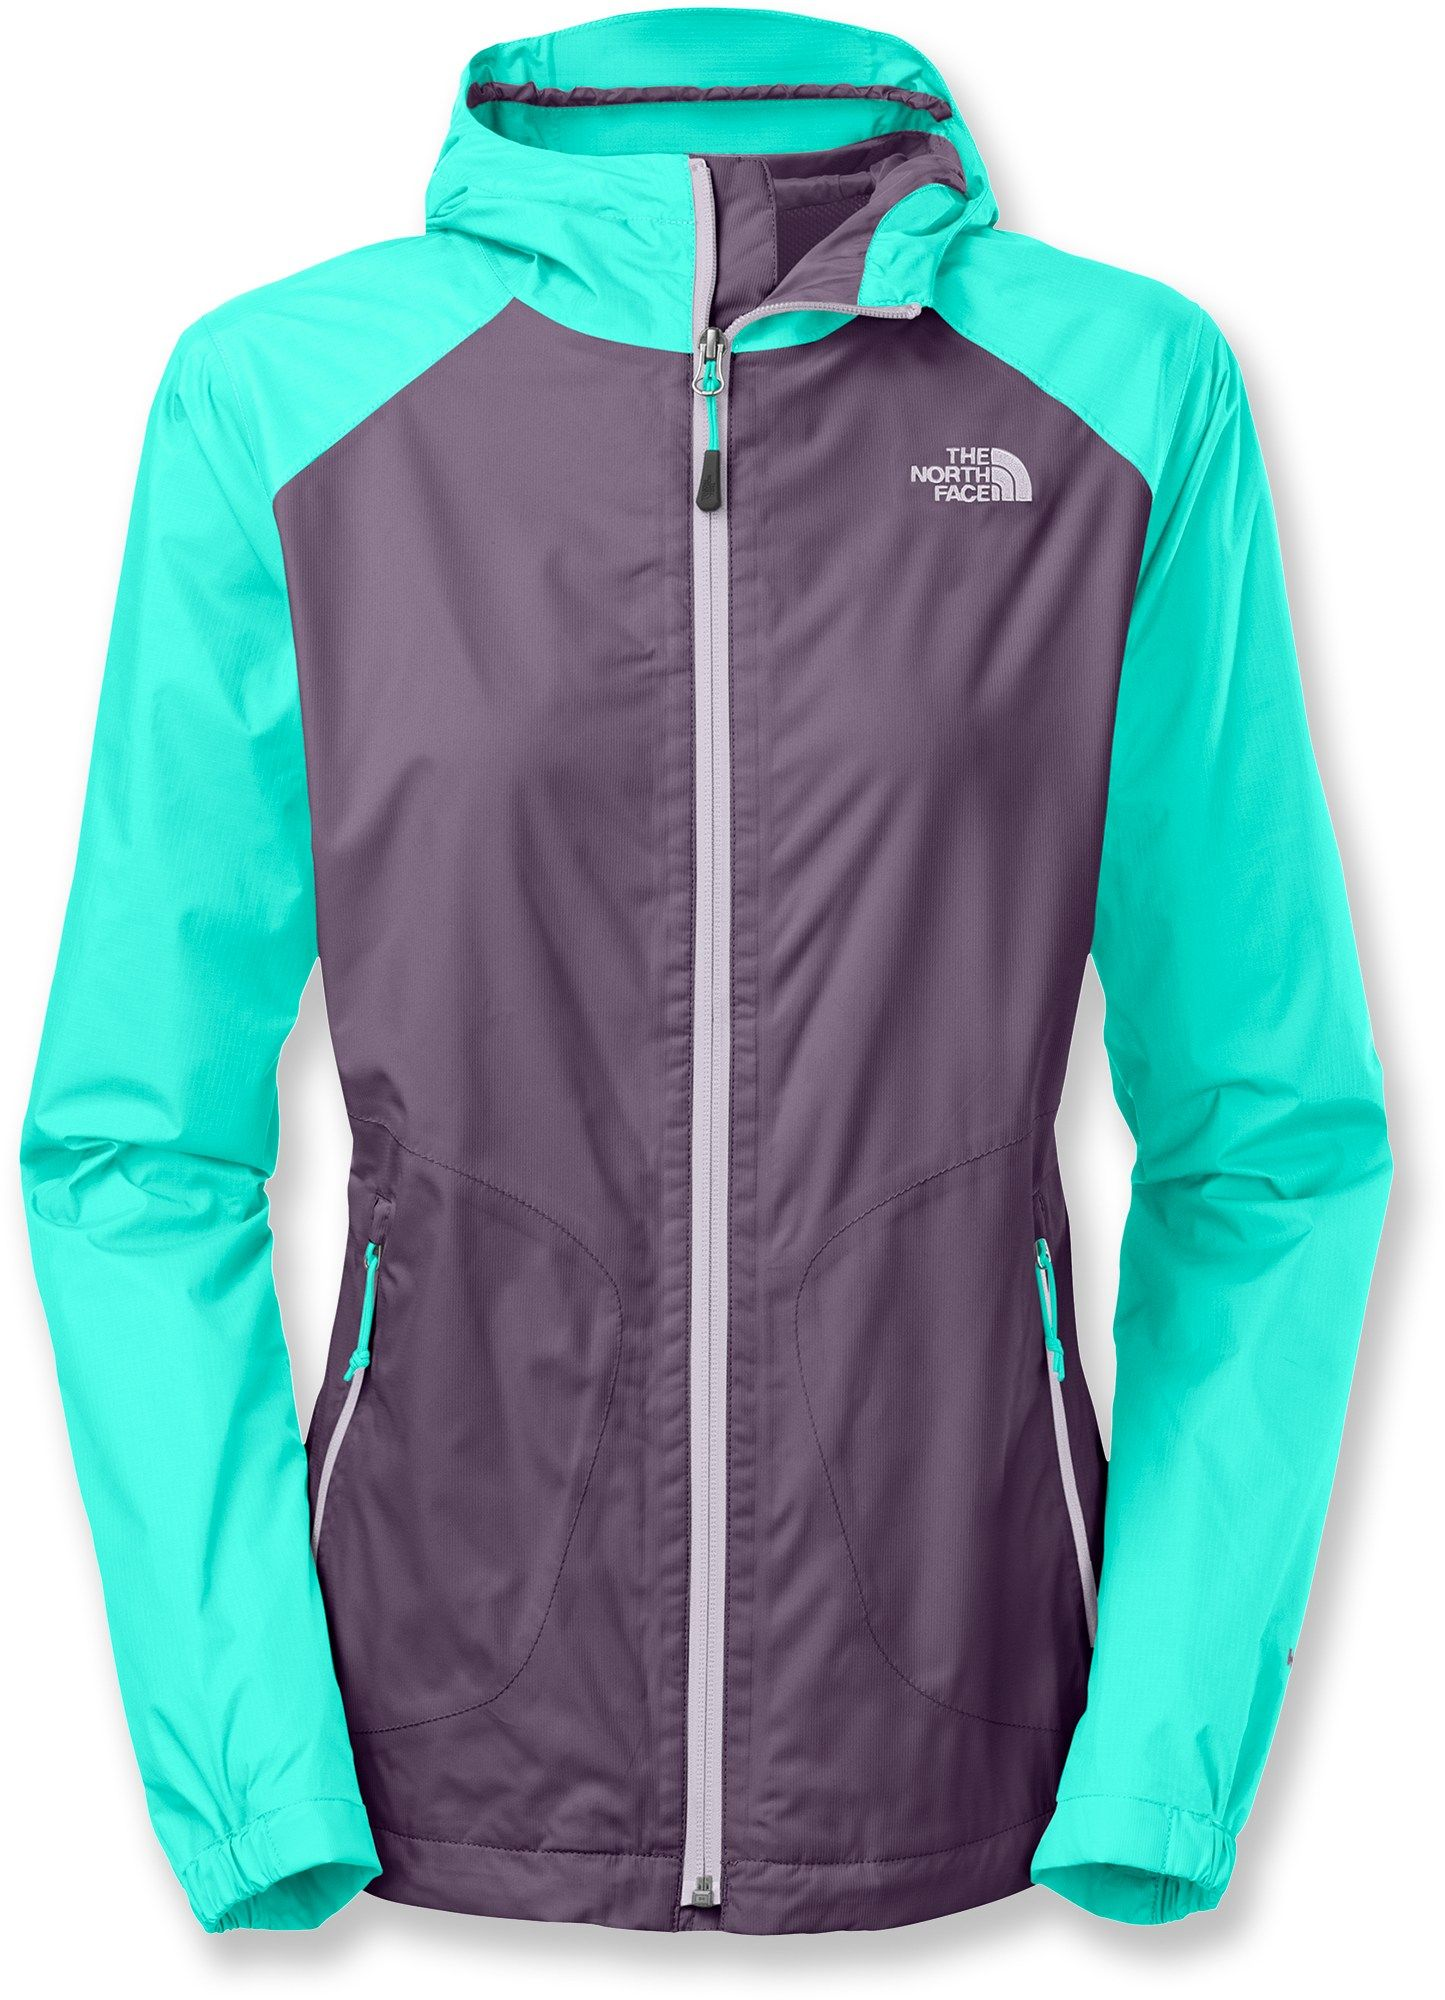 The North Face Allabout Rain Jacket - Women's | REI Co-op ...